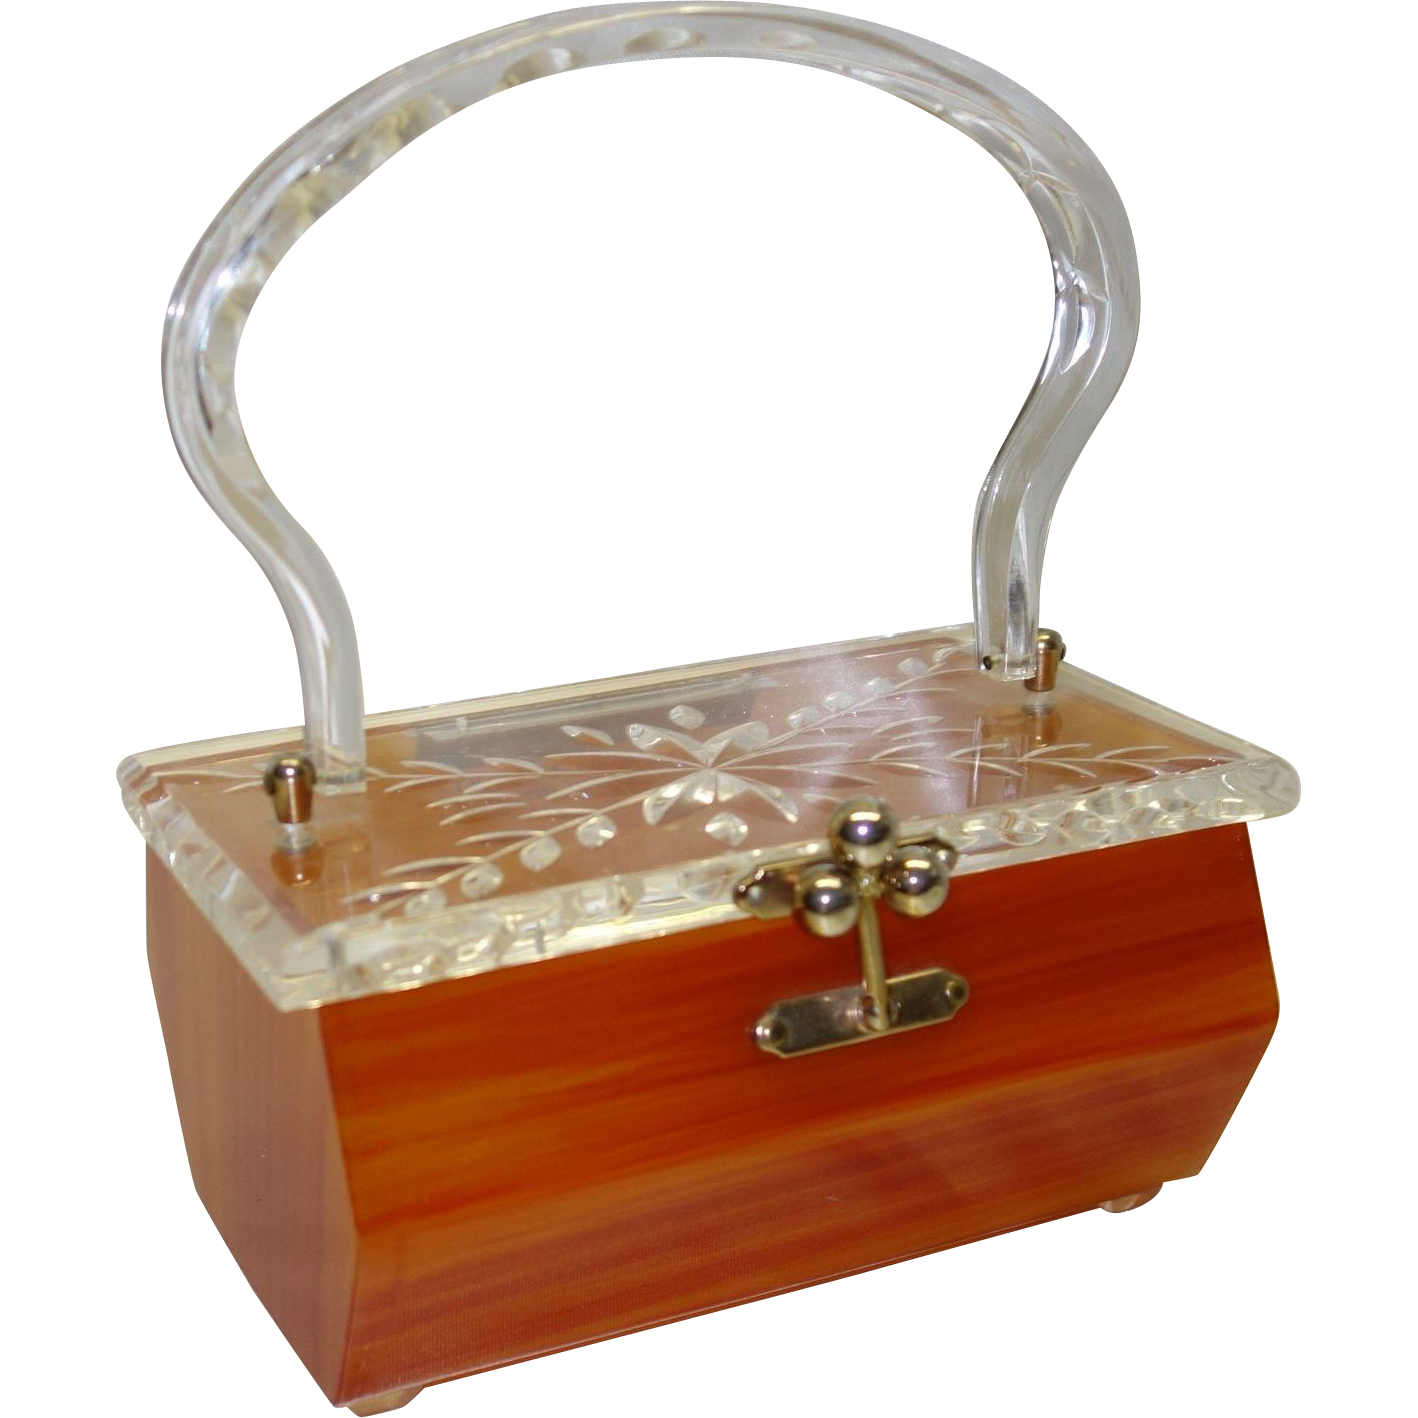 Vintage Carmel Lucite Purse with Clear Carved Lid by Charles S. Kahn